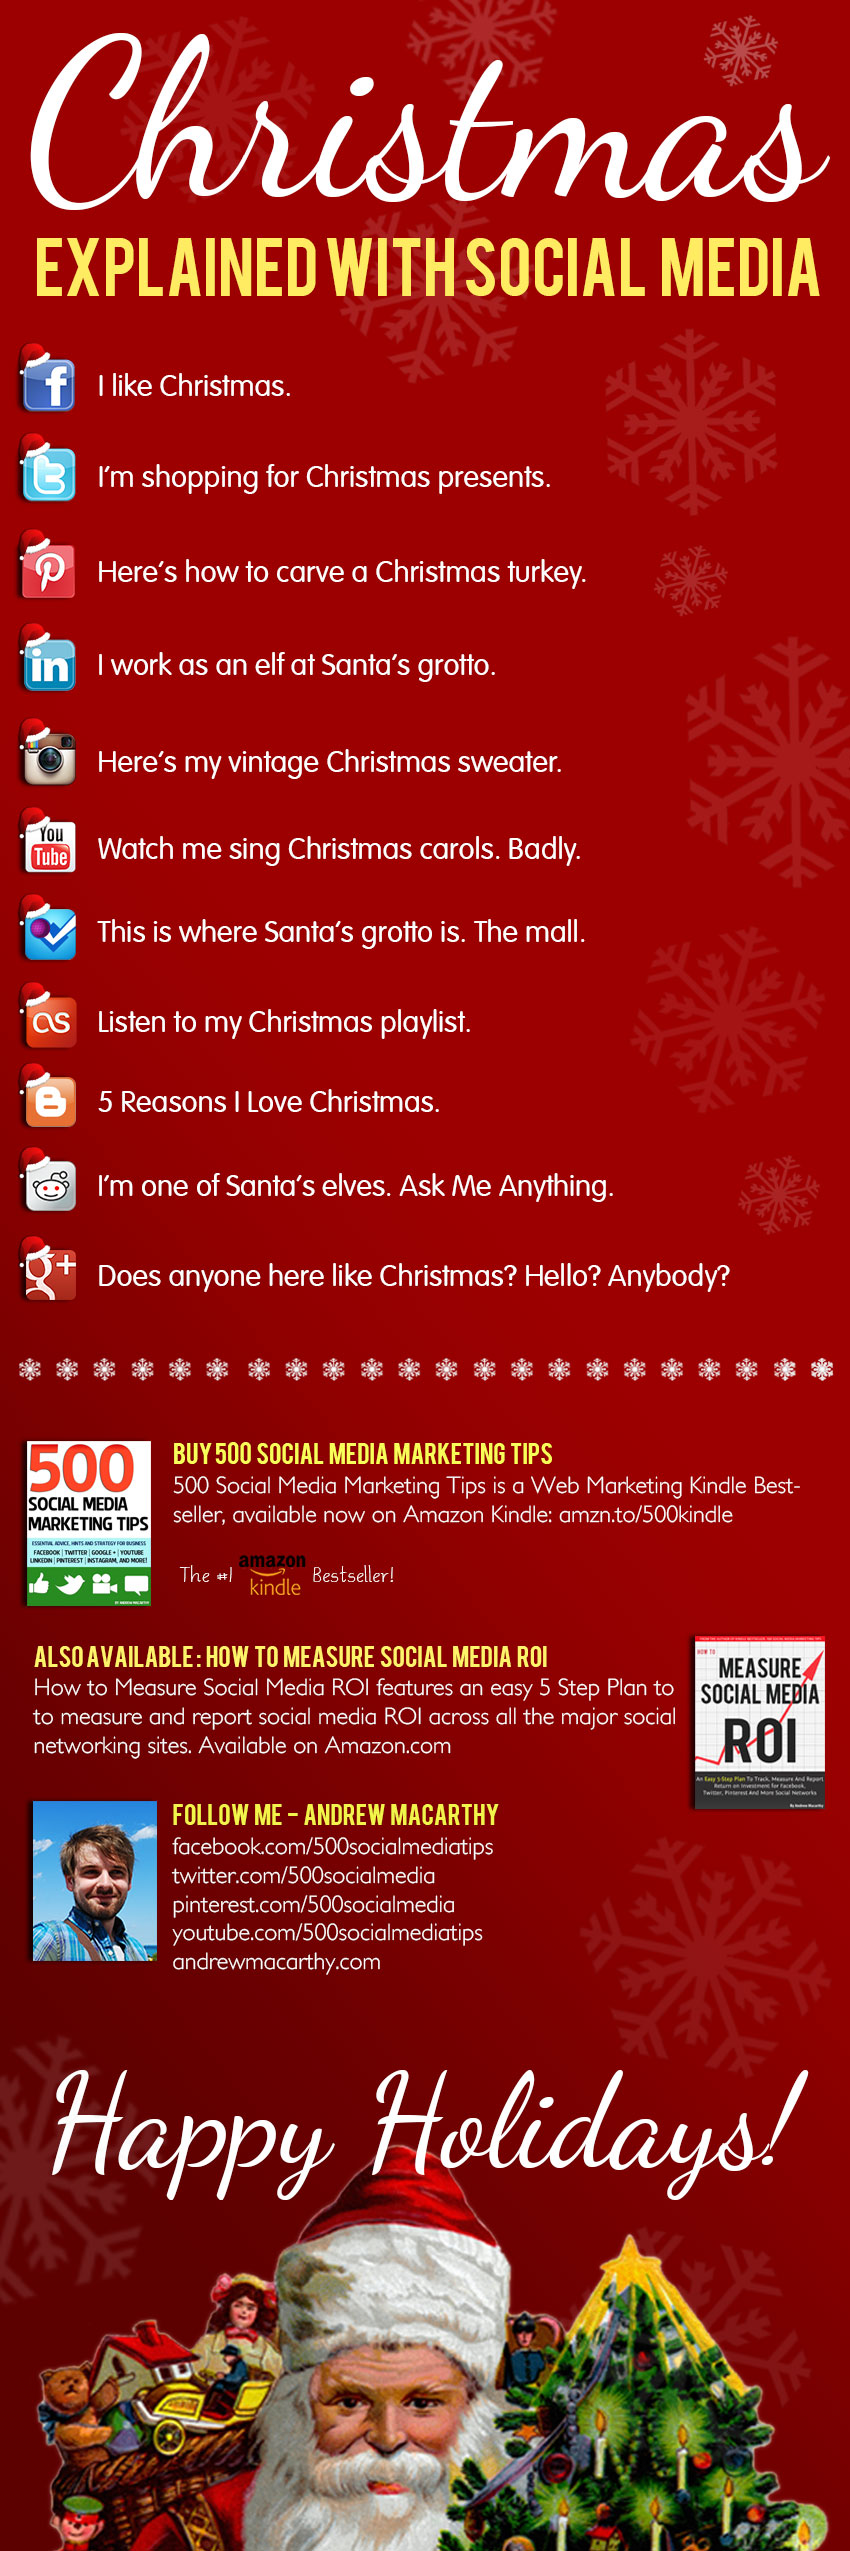 Christmas Explained With Social Media [INFOGRAPHIC]